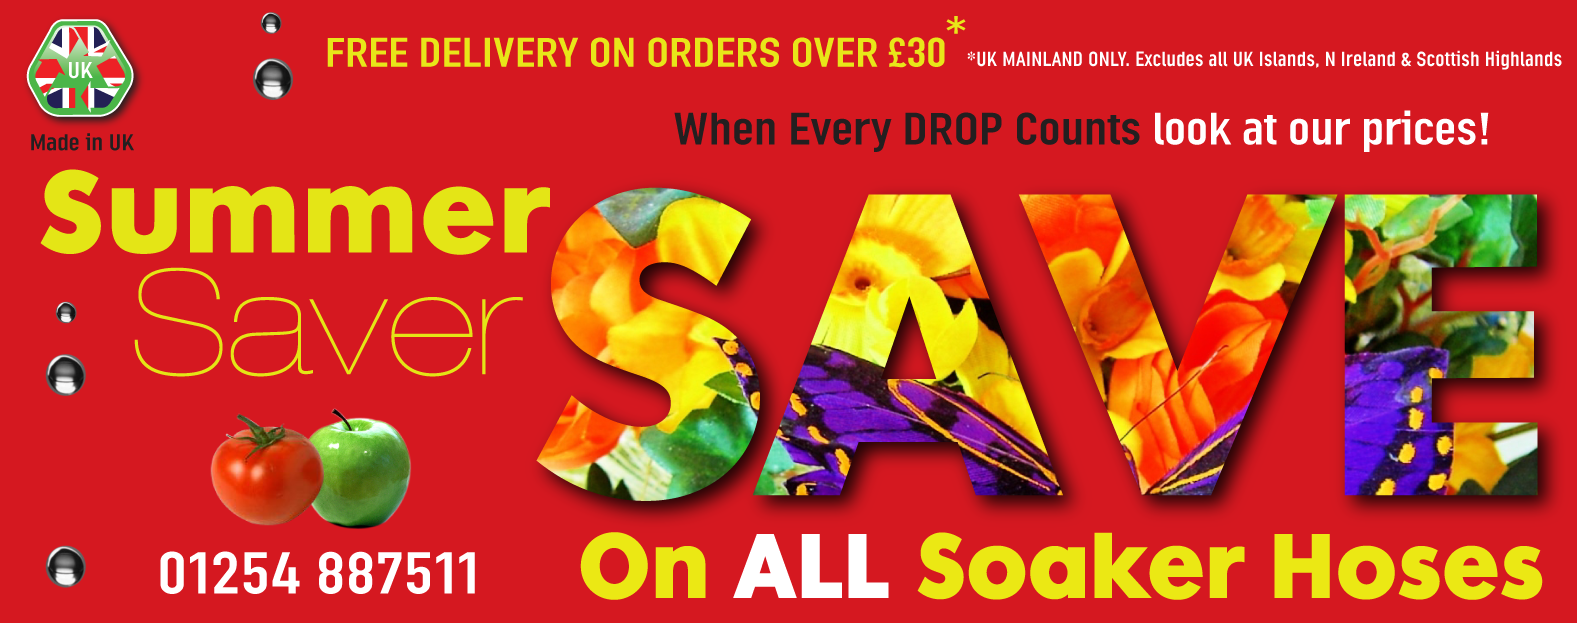 Save Pounds on ALL Our Soaker Hoses